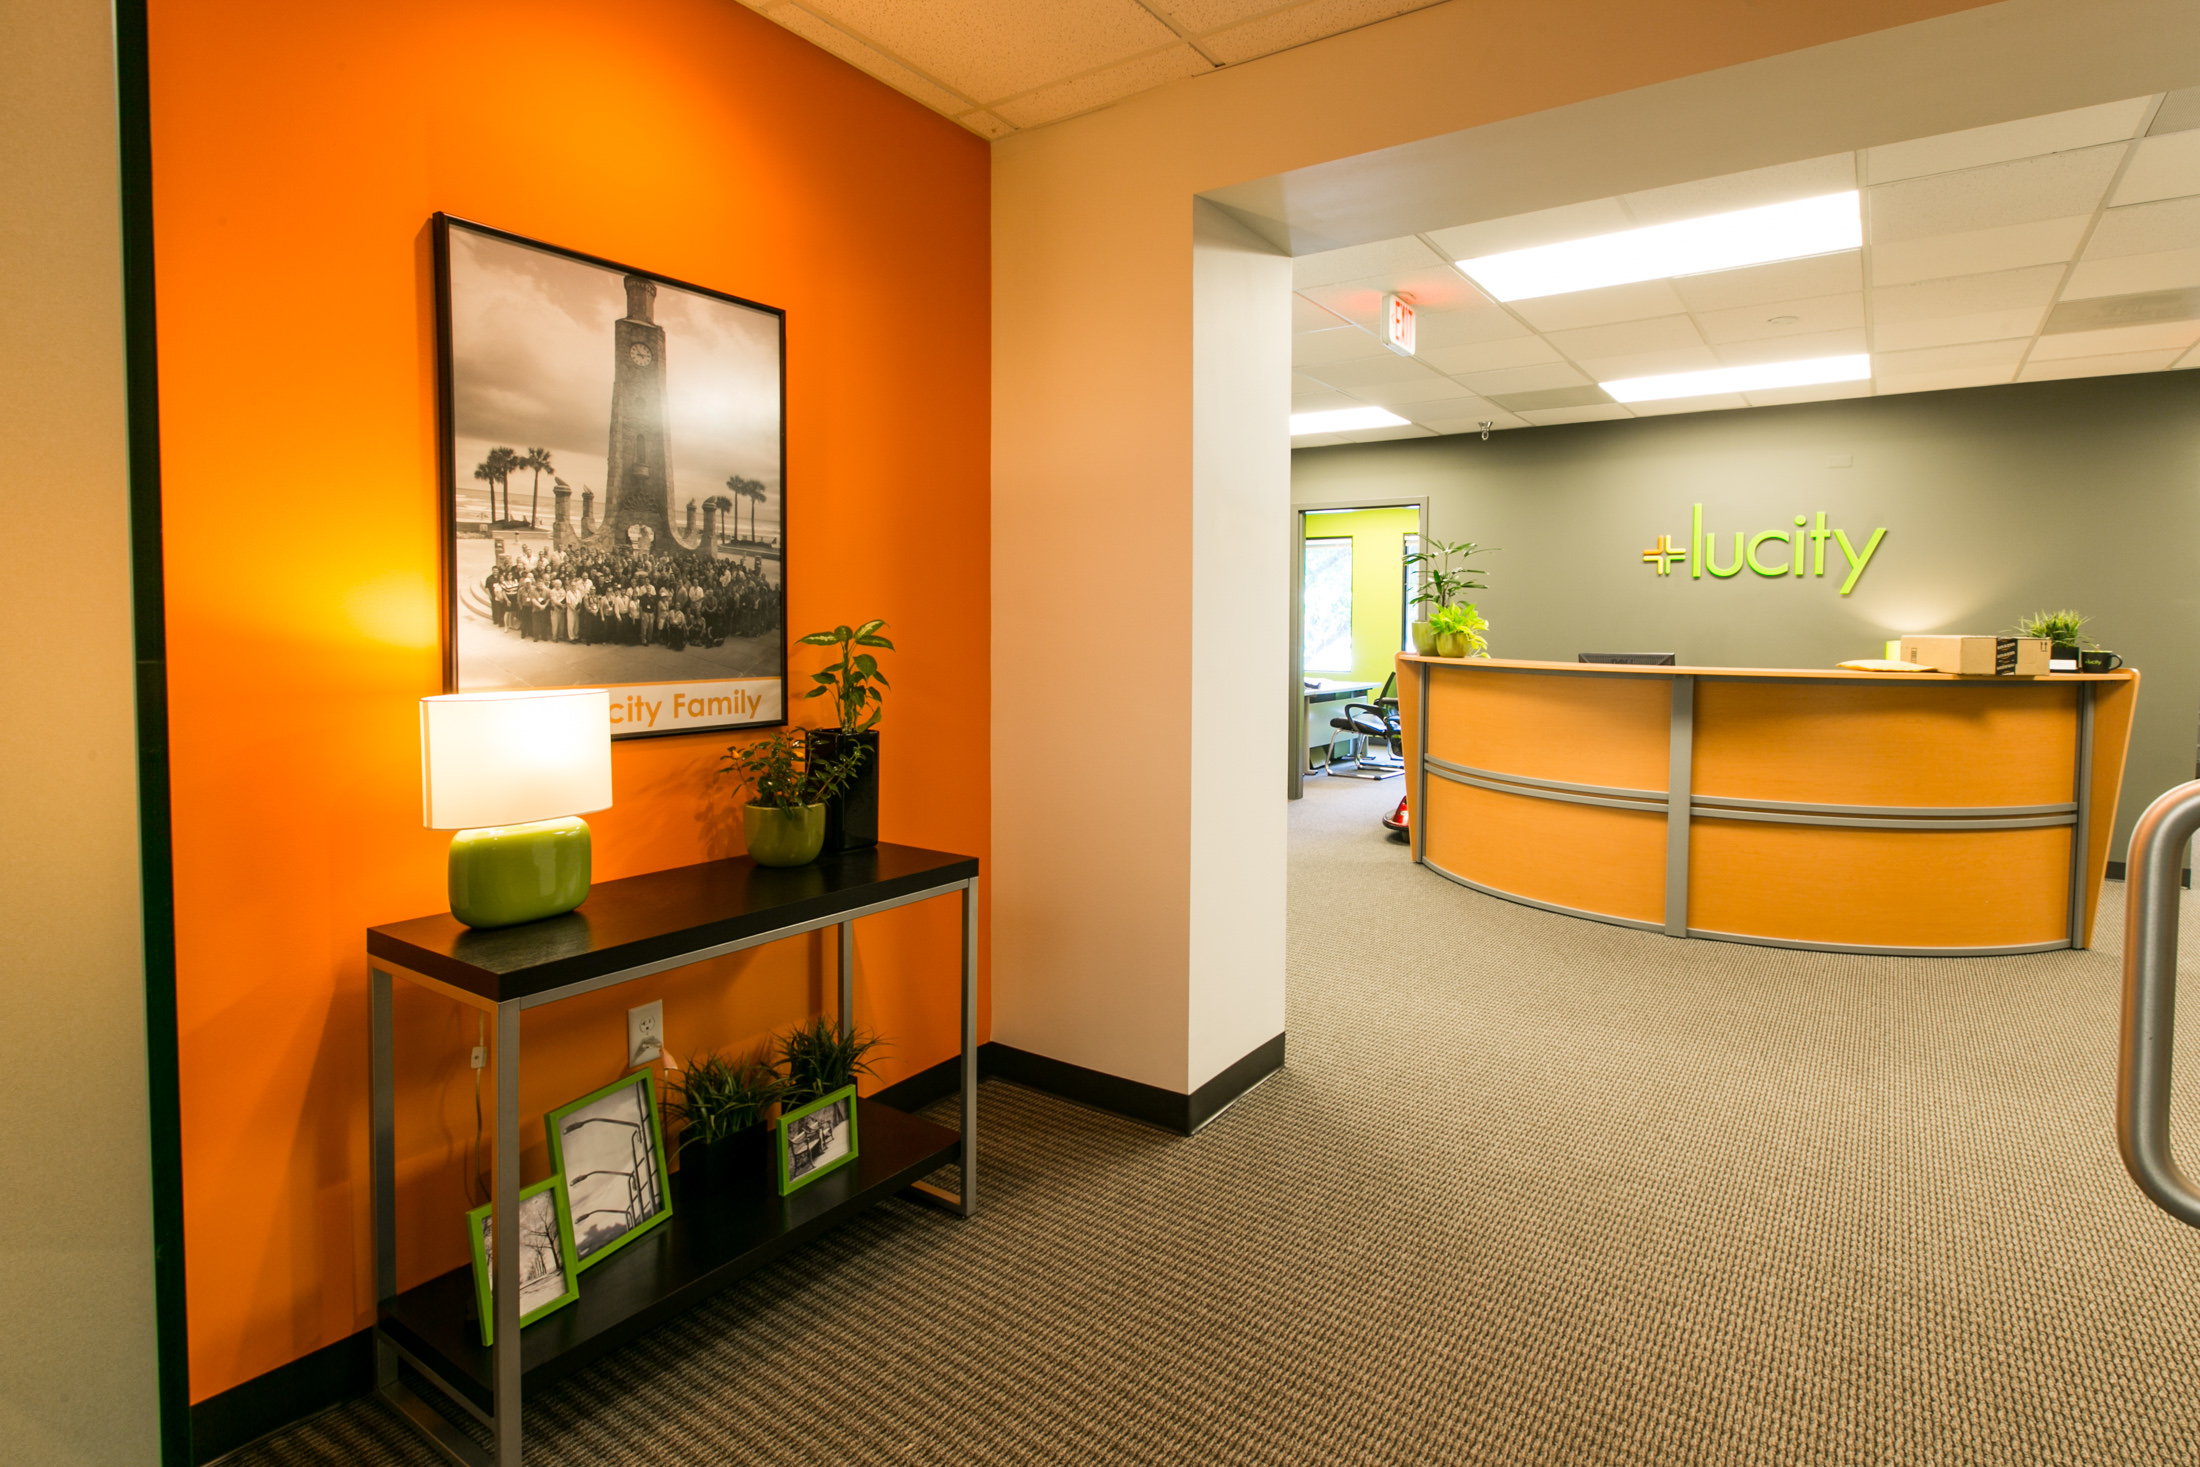 The Lucity waiting area features bright colors